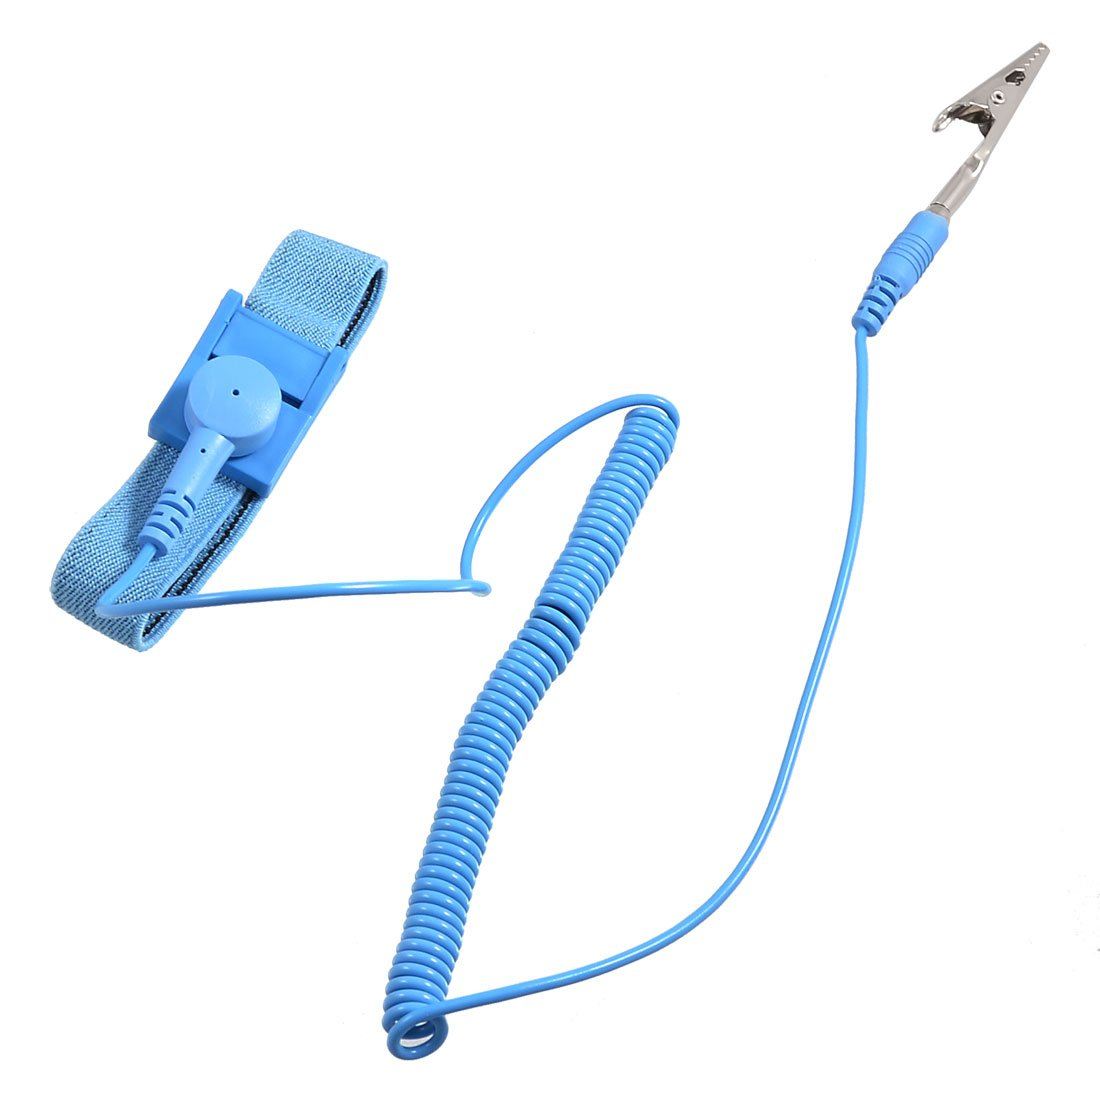 Uxcell a12091000ux0137 Anti Static ESD Adjustable Wrist Strap Band Ground Conductive w Cable